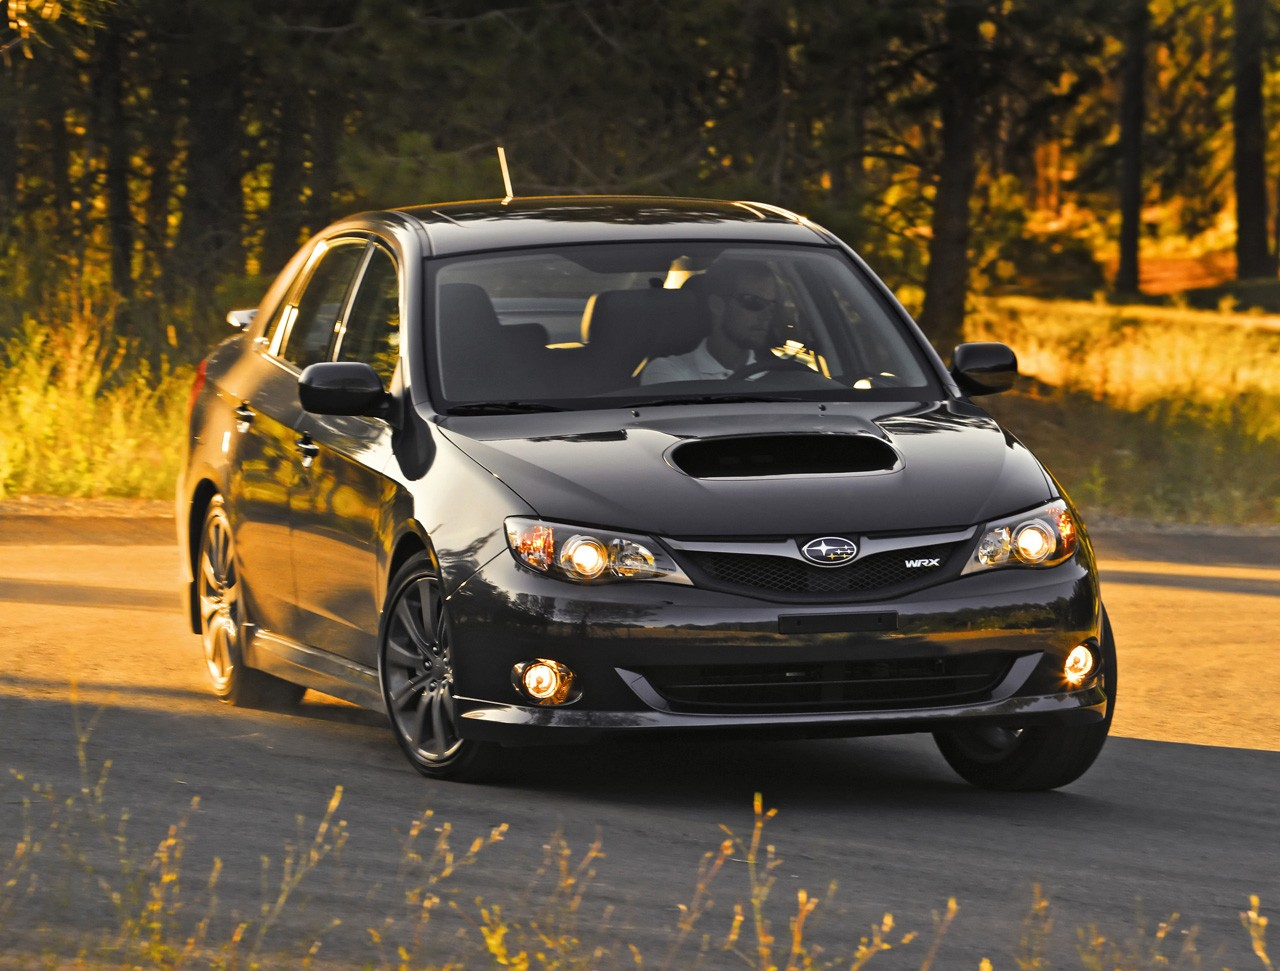 New 2009 Subaru Impreza WRX and WRX STI with 265 Hp engine